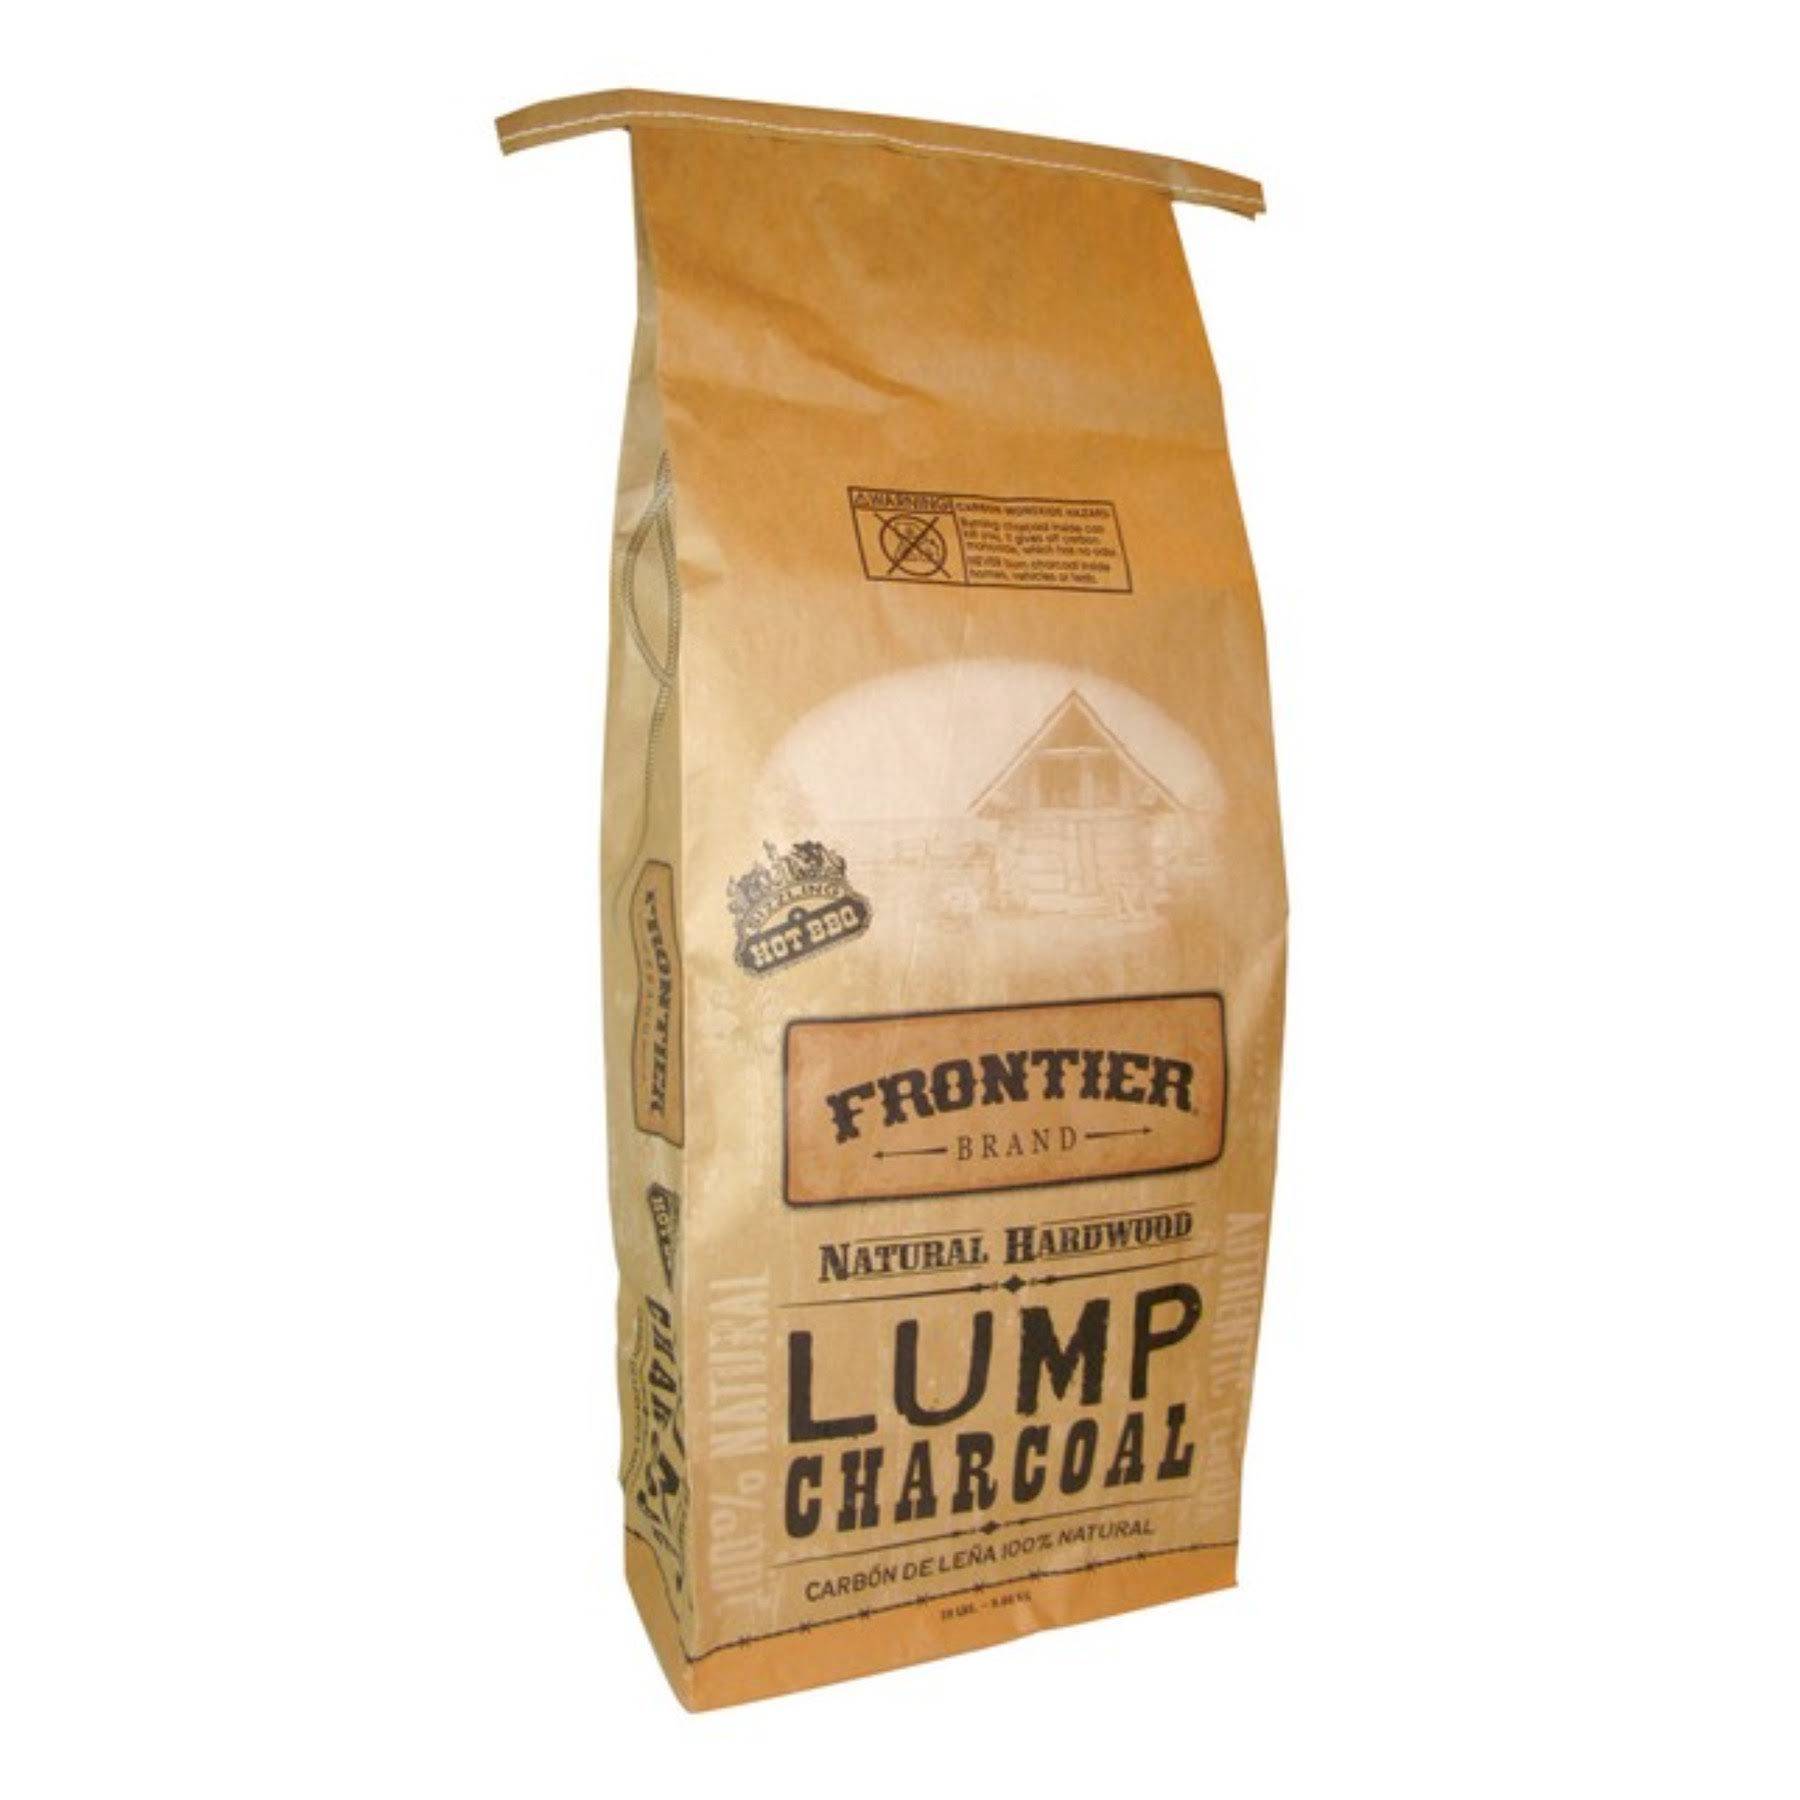 Frontier Lump Charcoal - Natural Hardwood